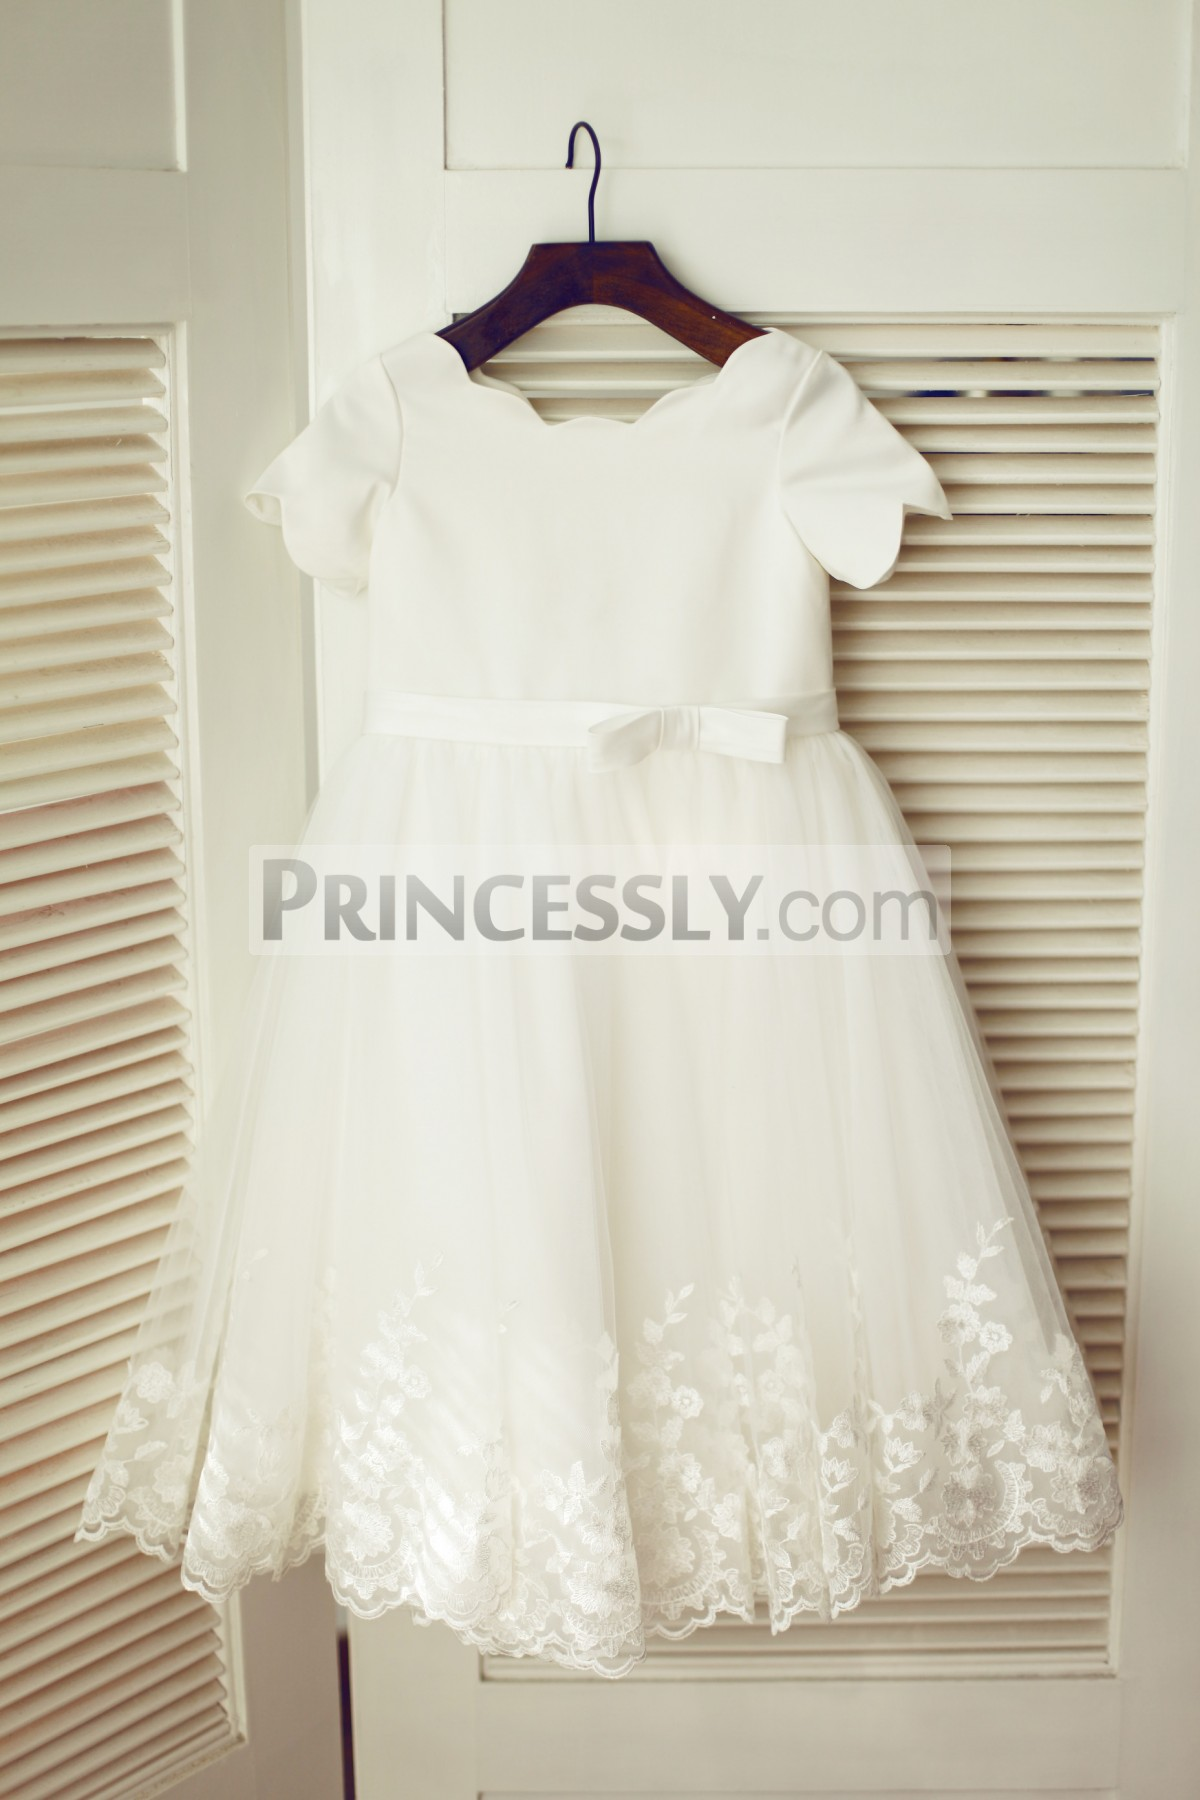 Princessly.com-K1003335-Ivory Satin Lace Tulle Wedding Flower Girl Dress with Short Sleeves-31